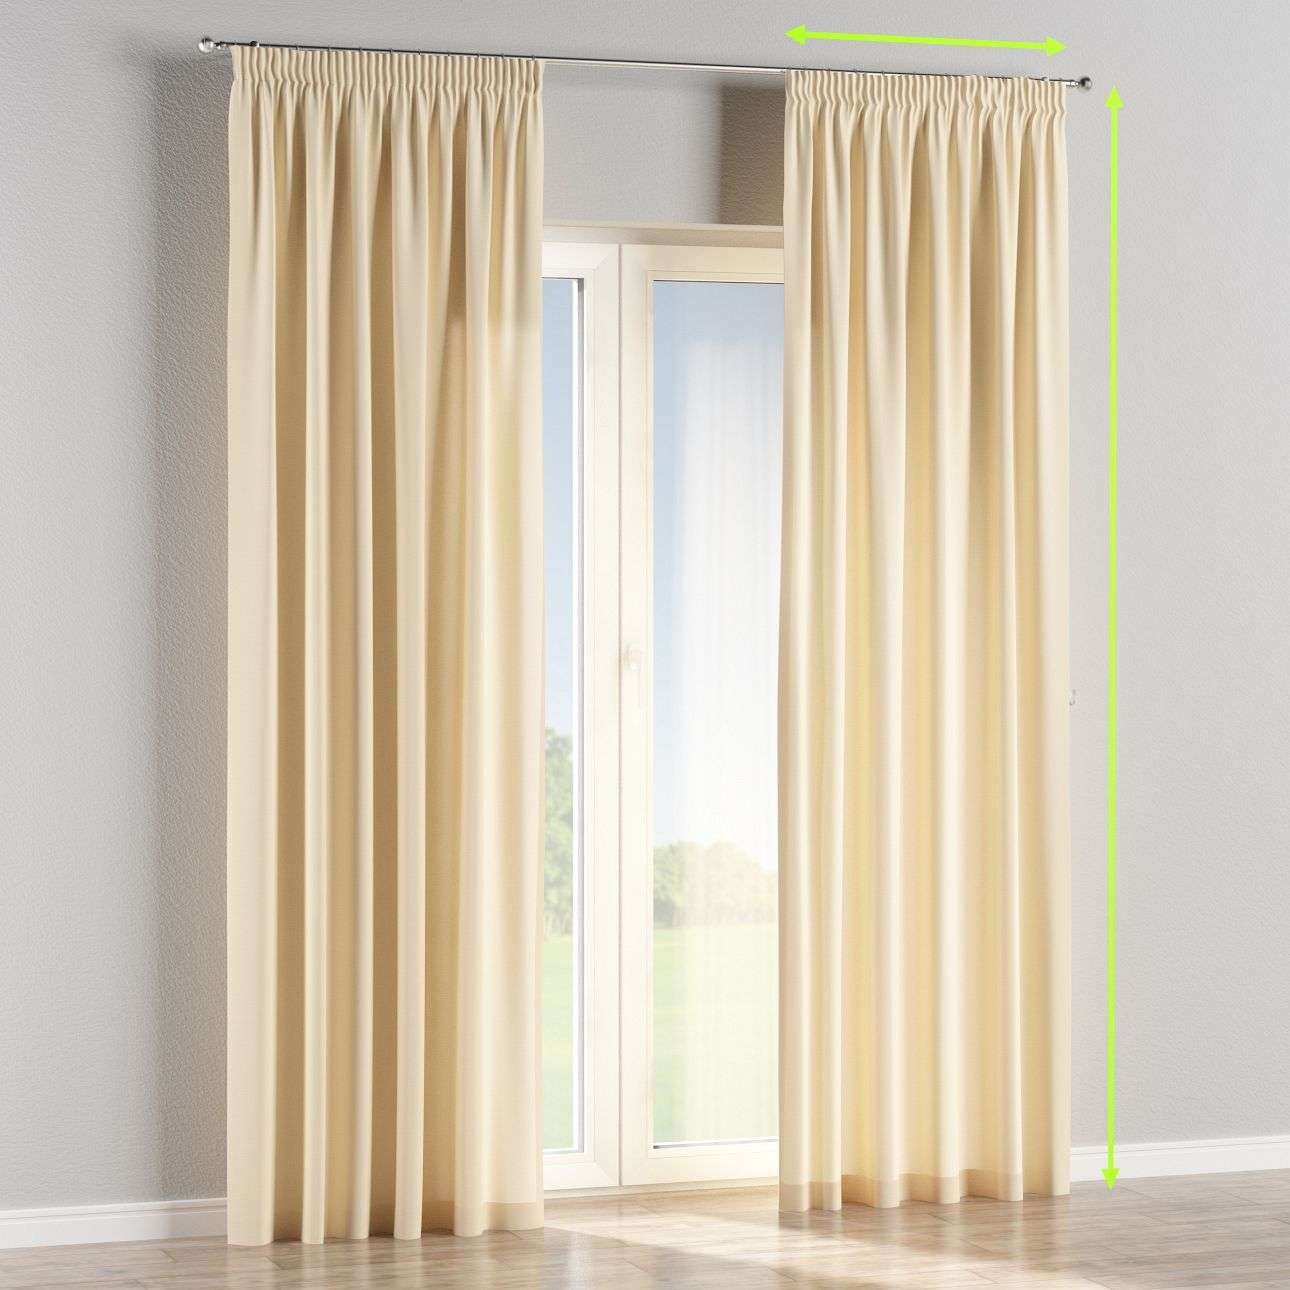 Pencil pleat curtains in collection Cotton Panama, fabric: 702-29